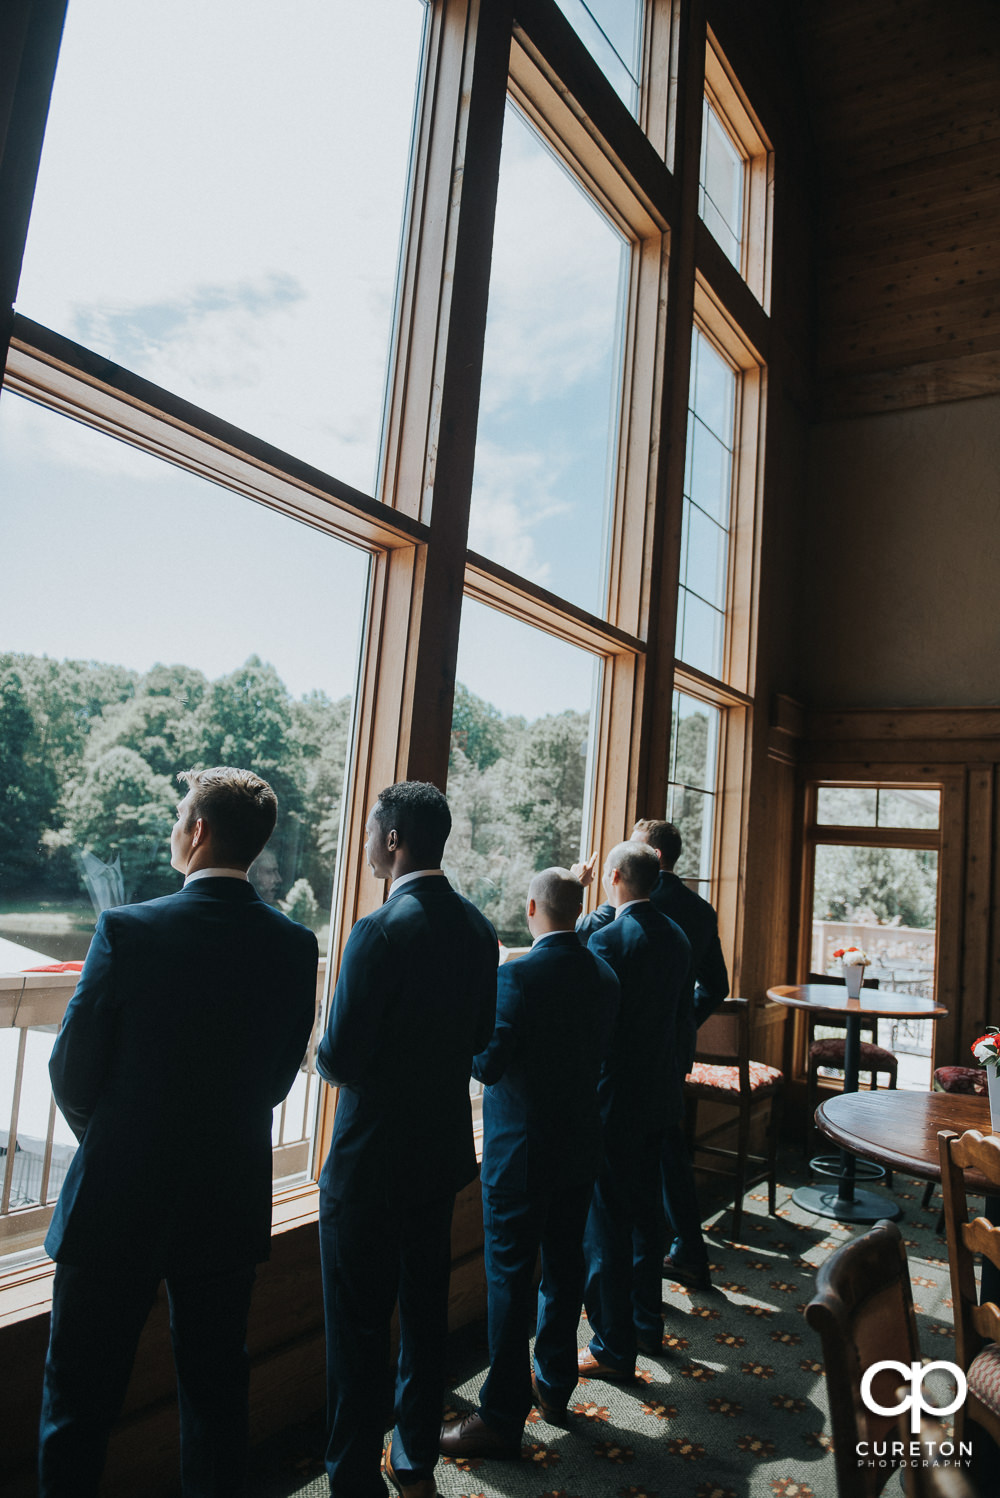 Groomsmen staring out of the window before the ceremony.